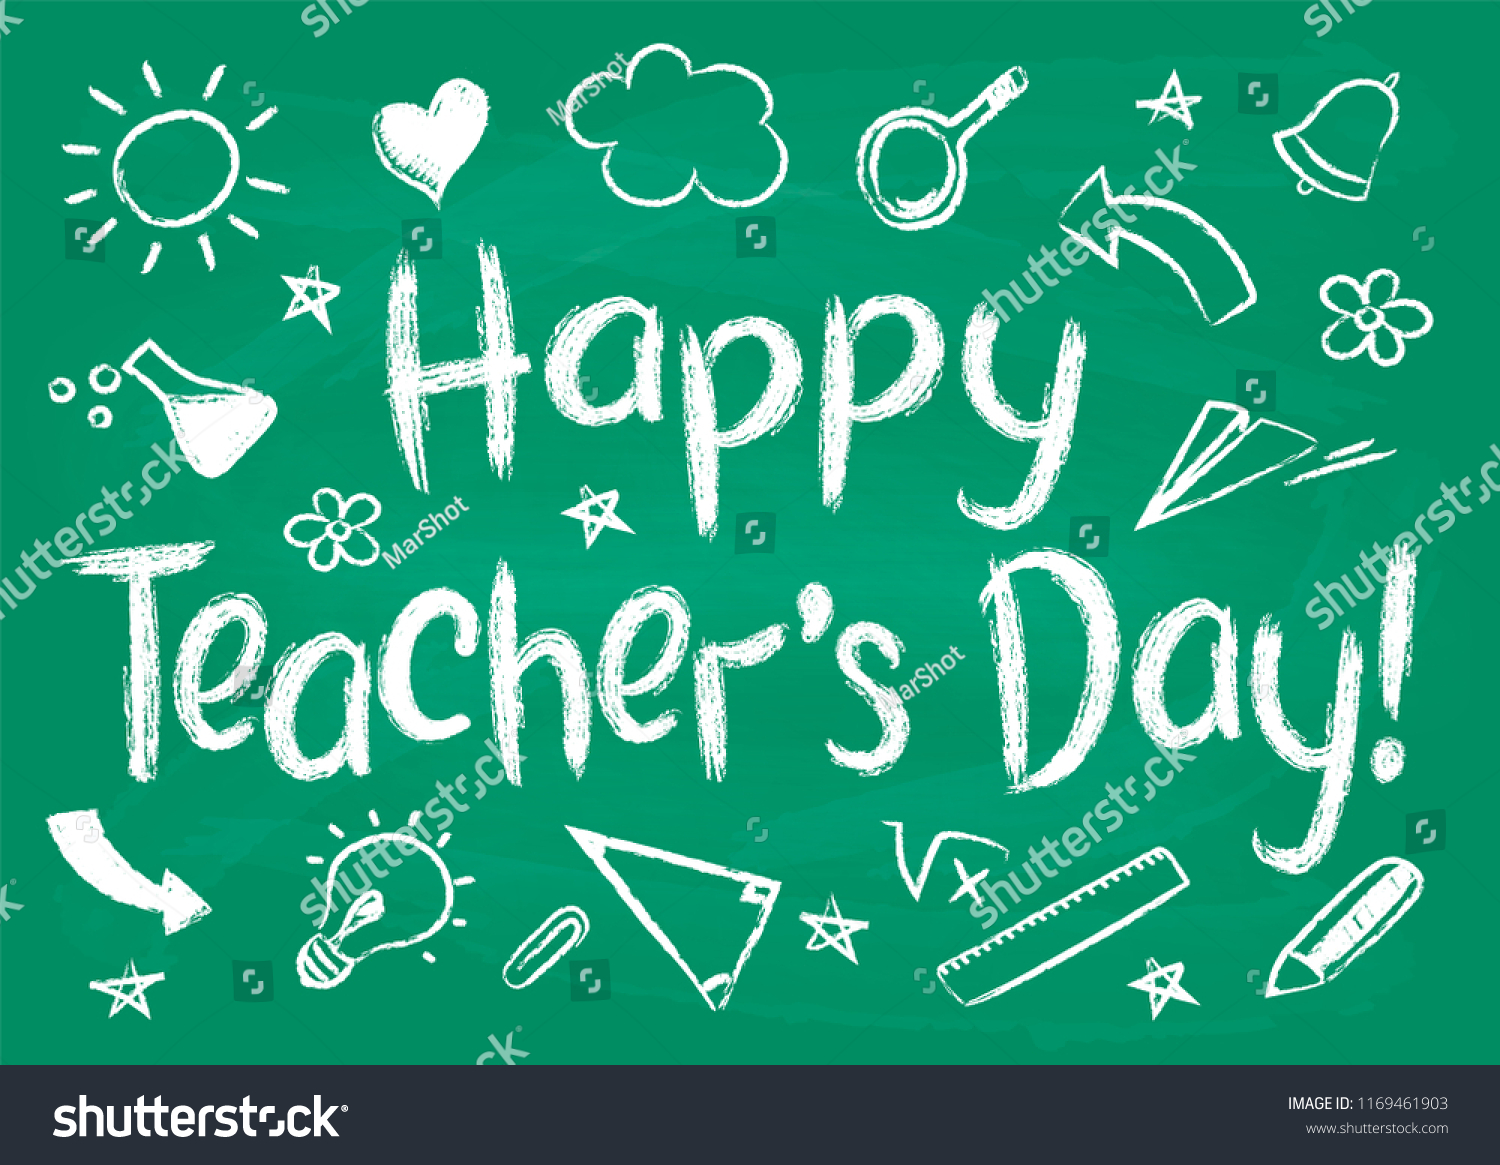 Happy teachers day greeting card placard stock vector royalty free happy teachers day greeting card or placard on green chalk board in sketchy style with handdrawn m4hsunfo